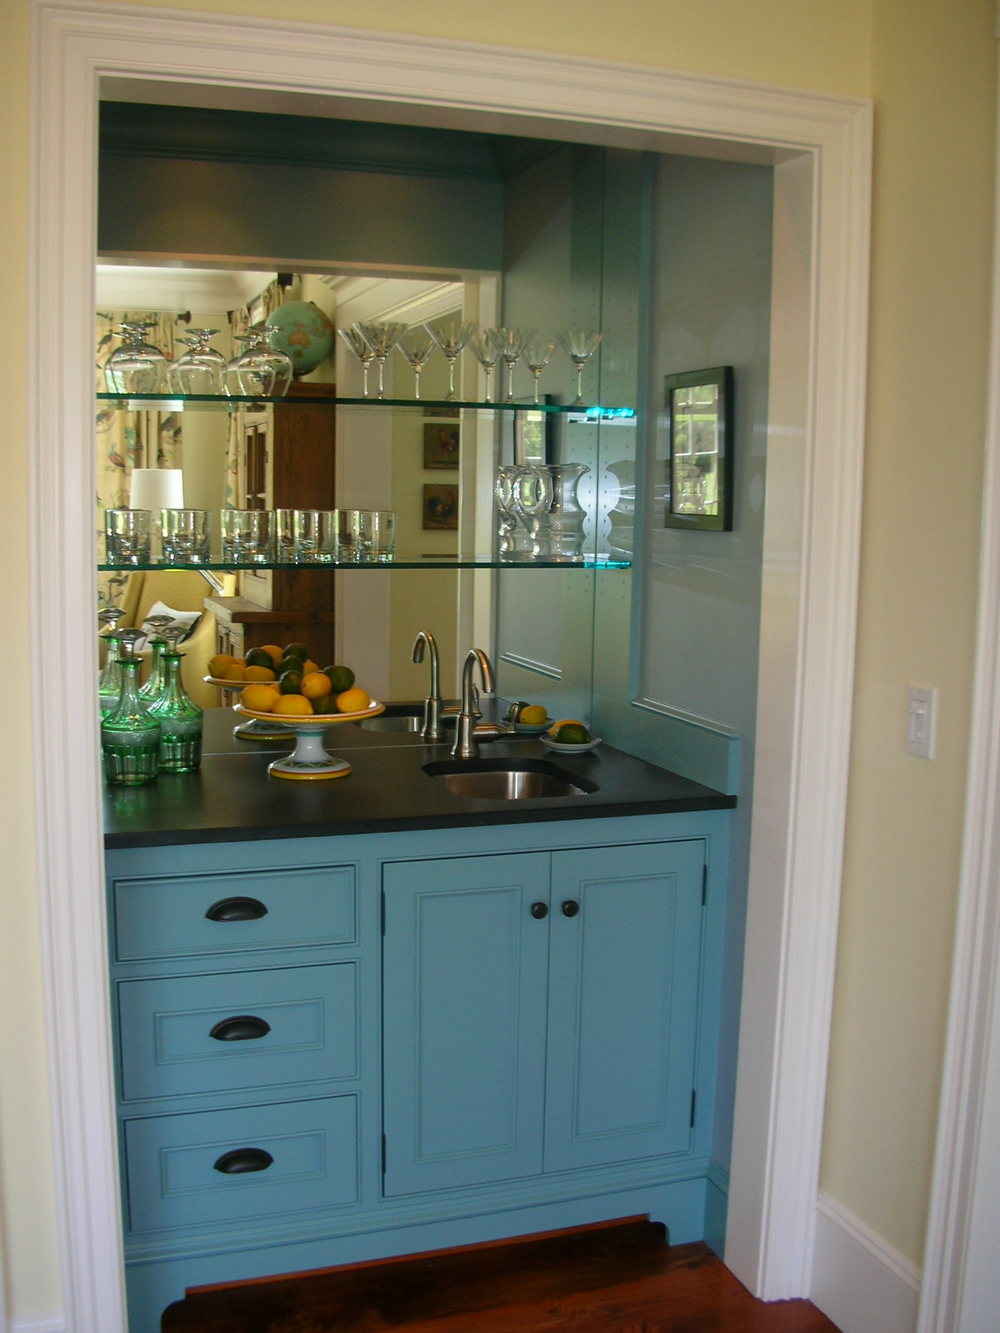 This Built In Wet Bar Has Lots Of Storage. Another Plus Is The Mirrored Back